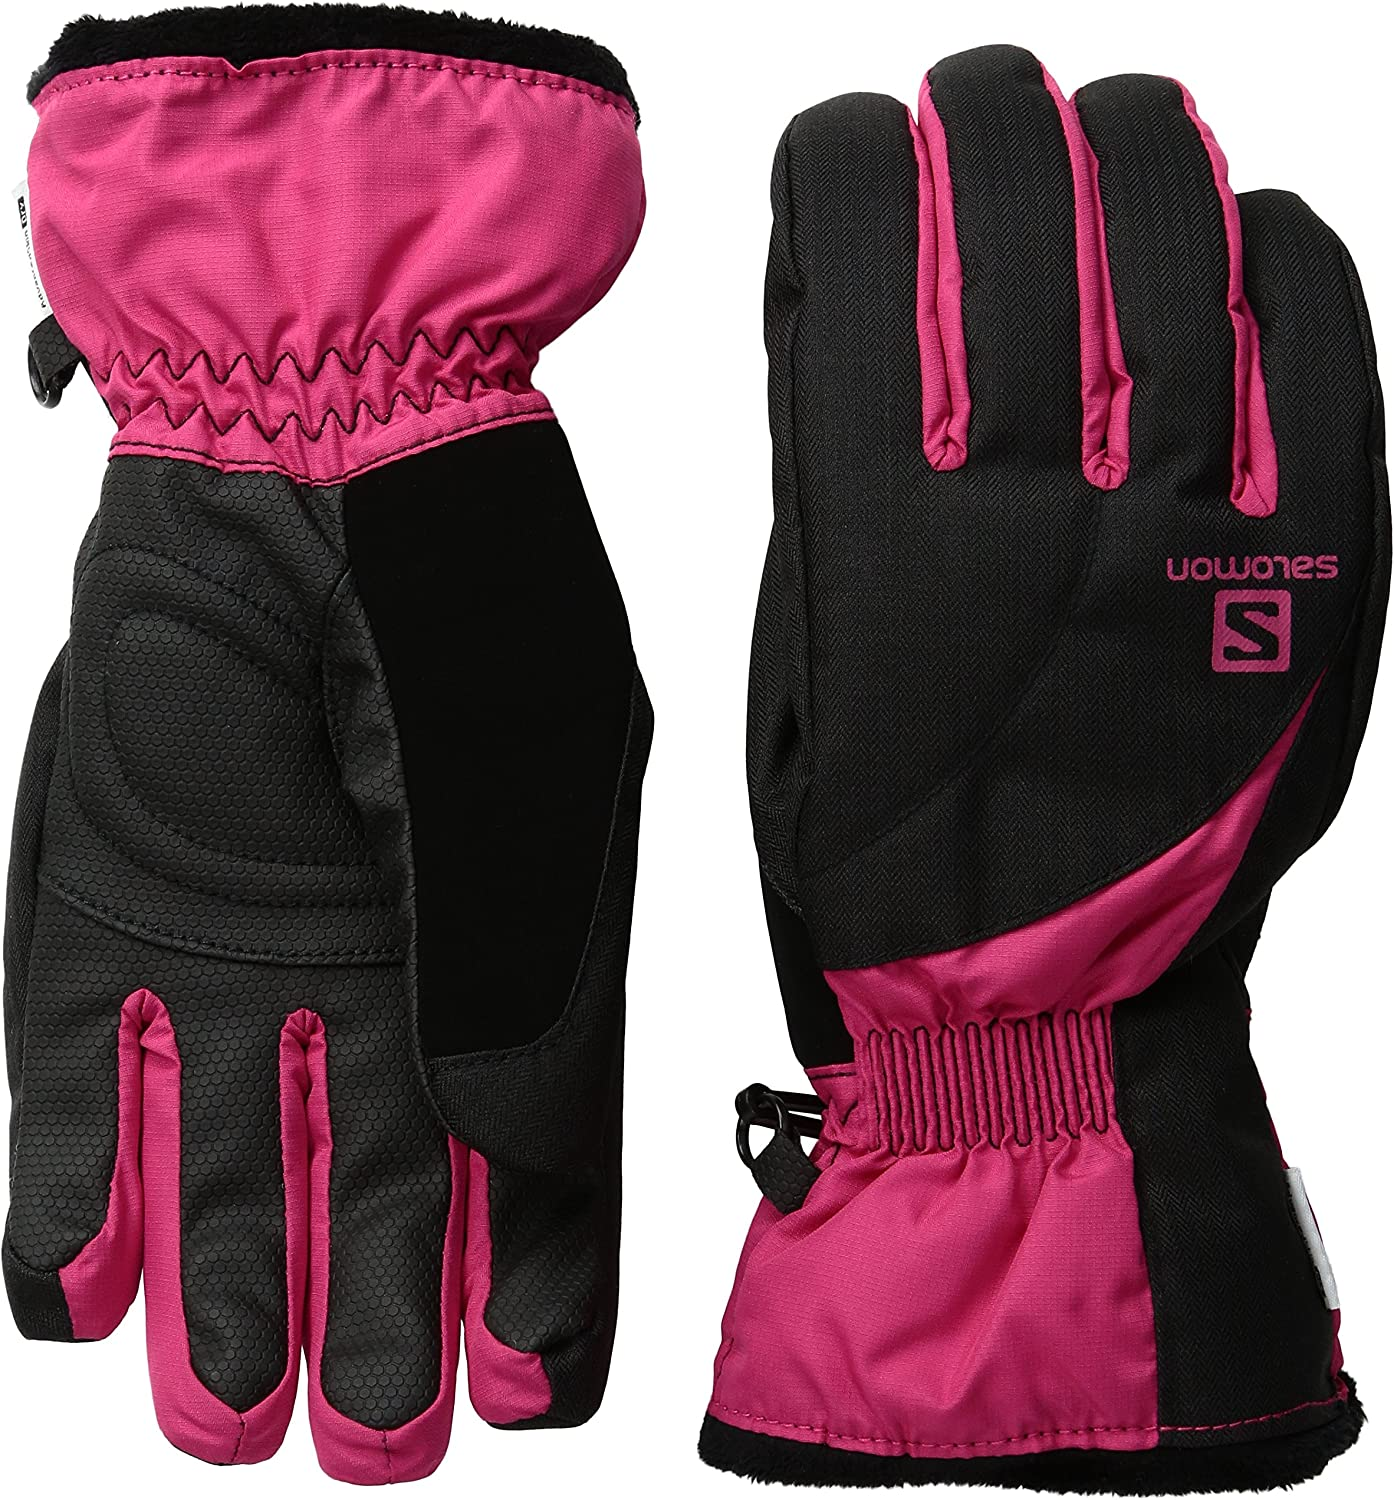 Salomon Women's Force Dry Gloves, Quick Drying with Adjustable Cuff